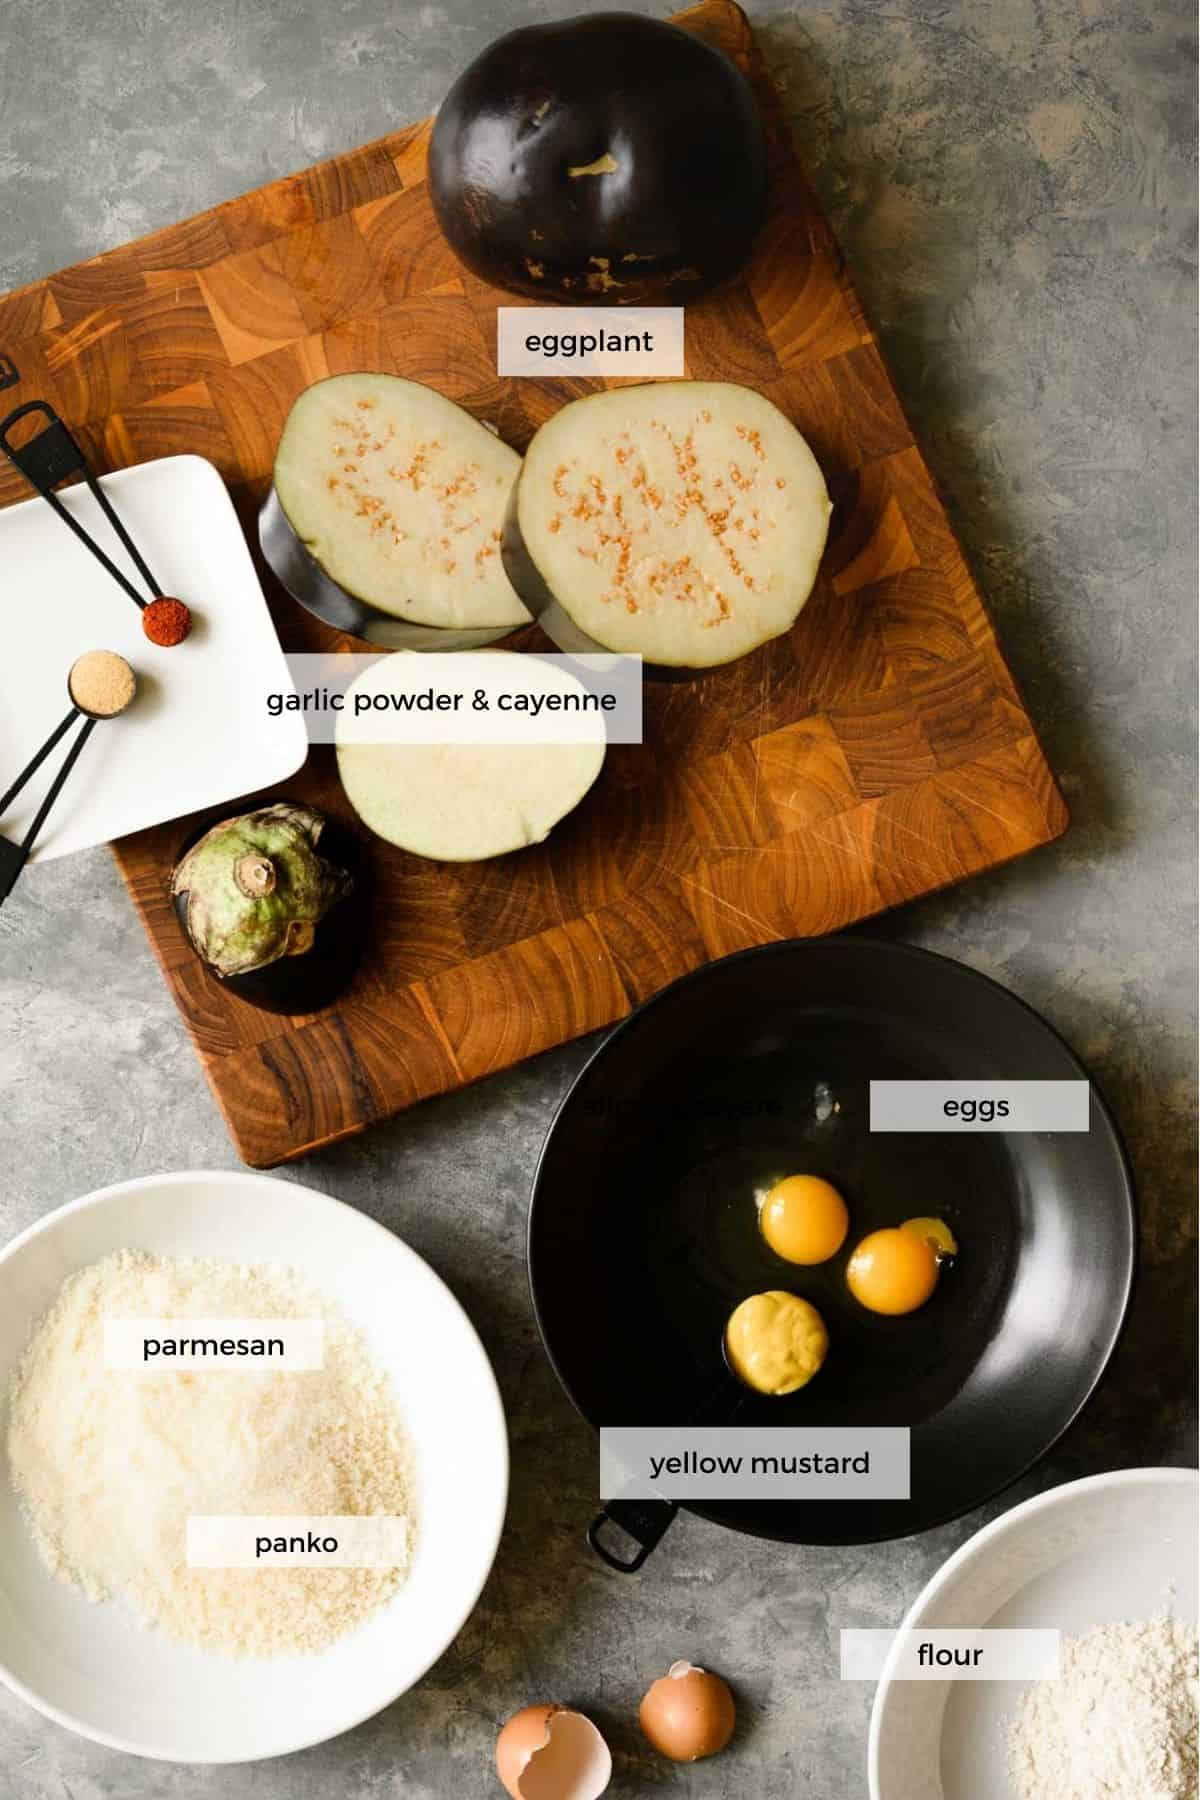 wooden cutting board with slices of eggplant, spoons with seasoning and bowls of eggs, flour, and breading.